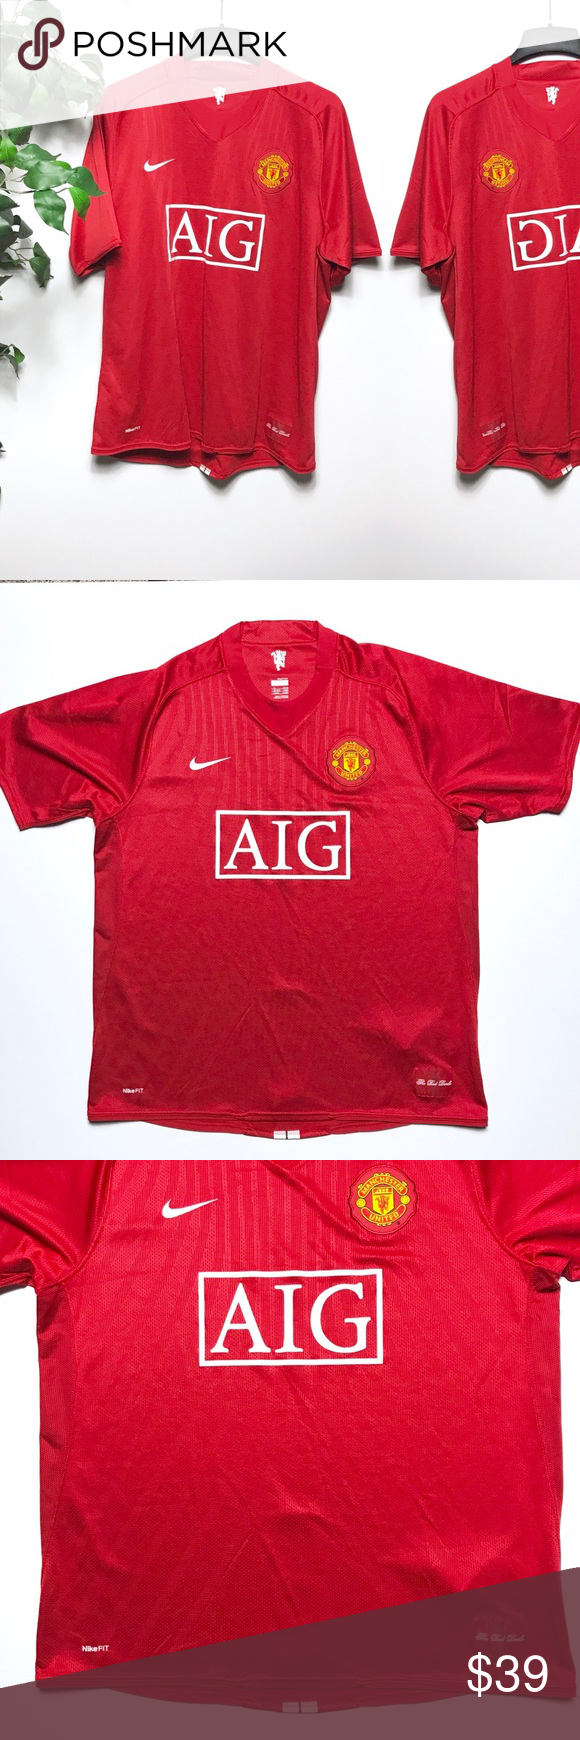 0cb84ab6c Nike AIG Manchester United Soccer Red Jersey - XL Awesome Nike fro-fit Manchester  United